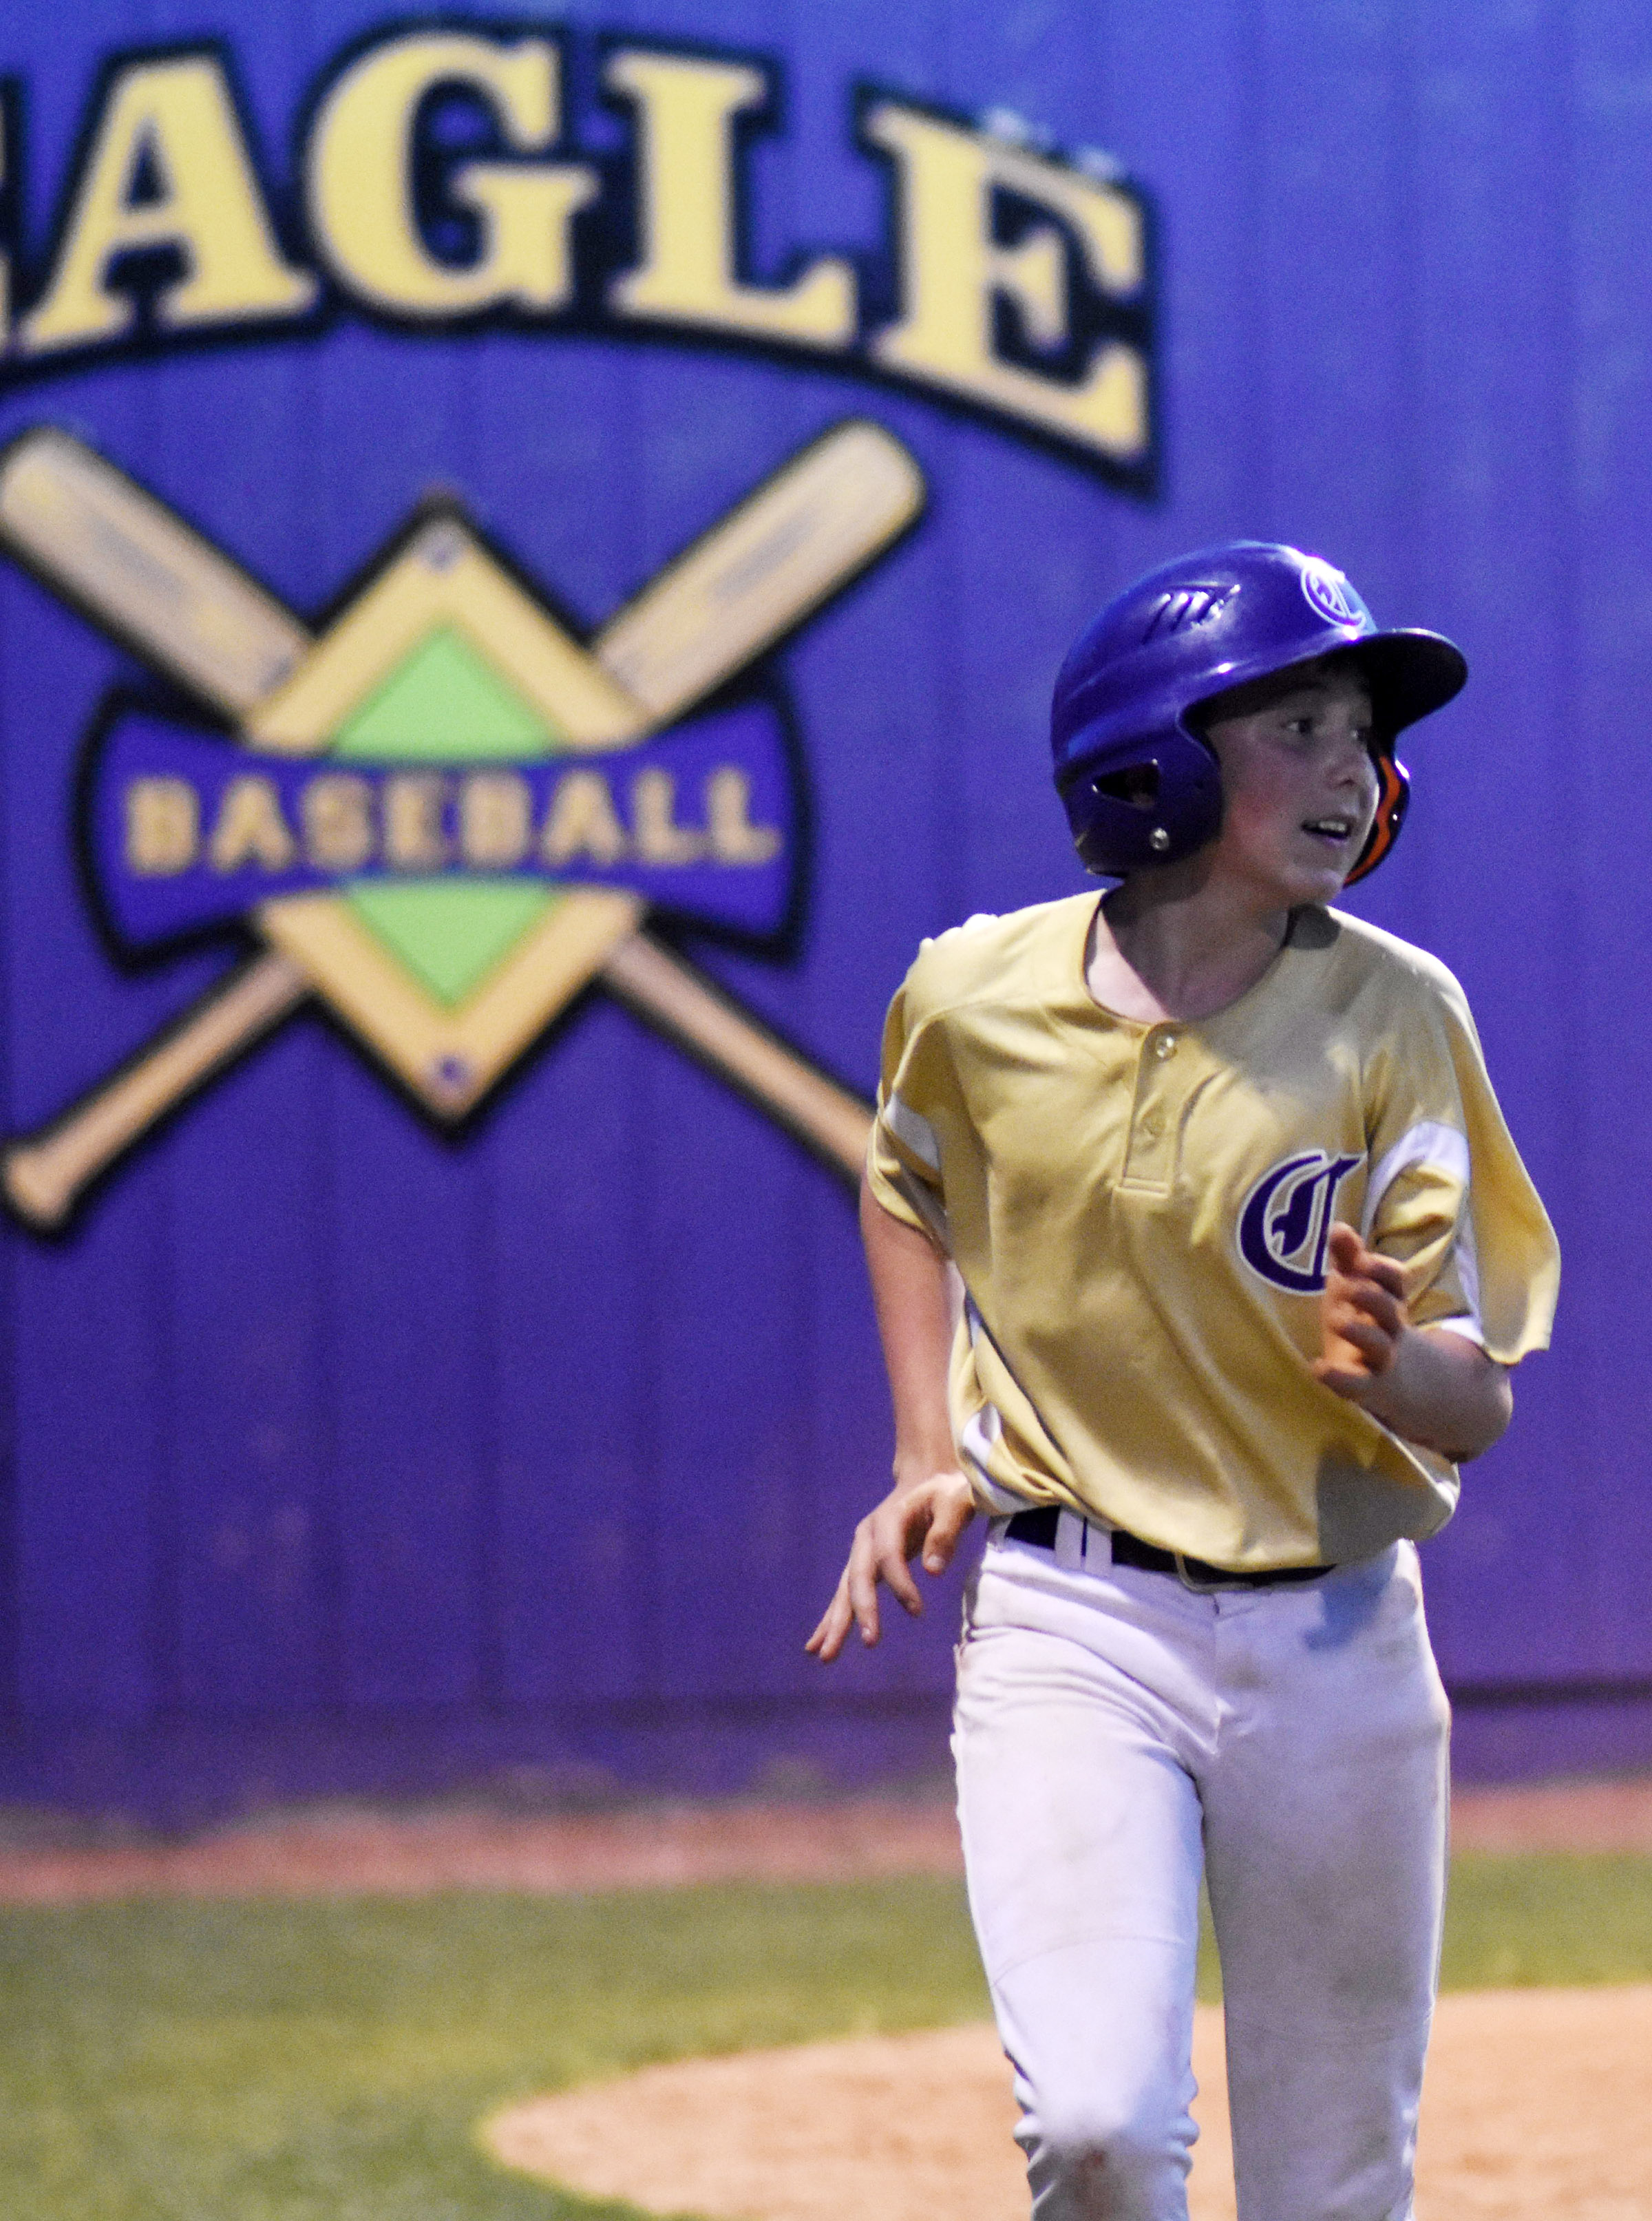 CMS eighth-grader Dakota Harris runs to the dugout after scoring a run.